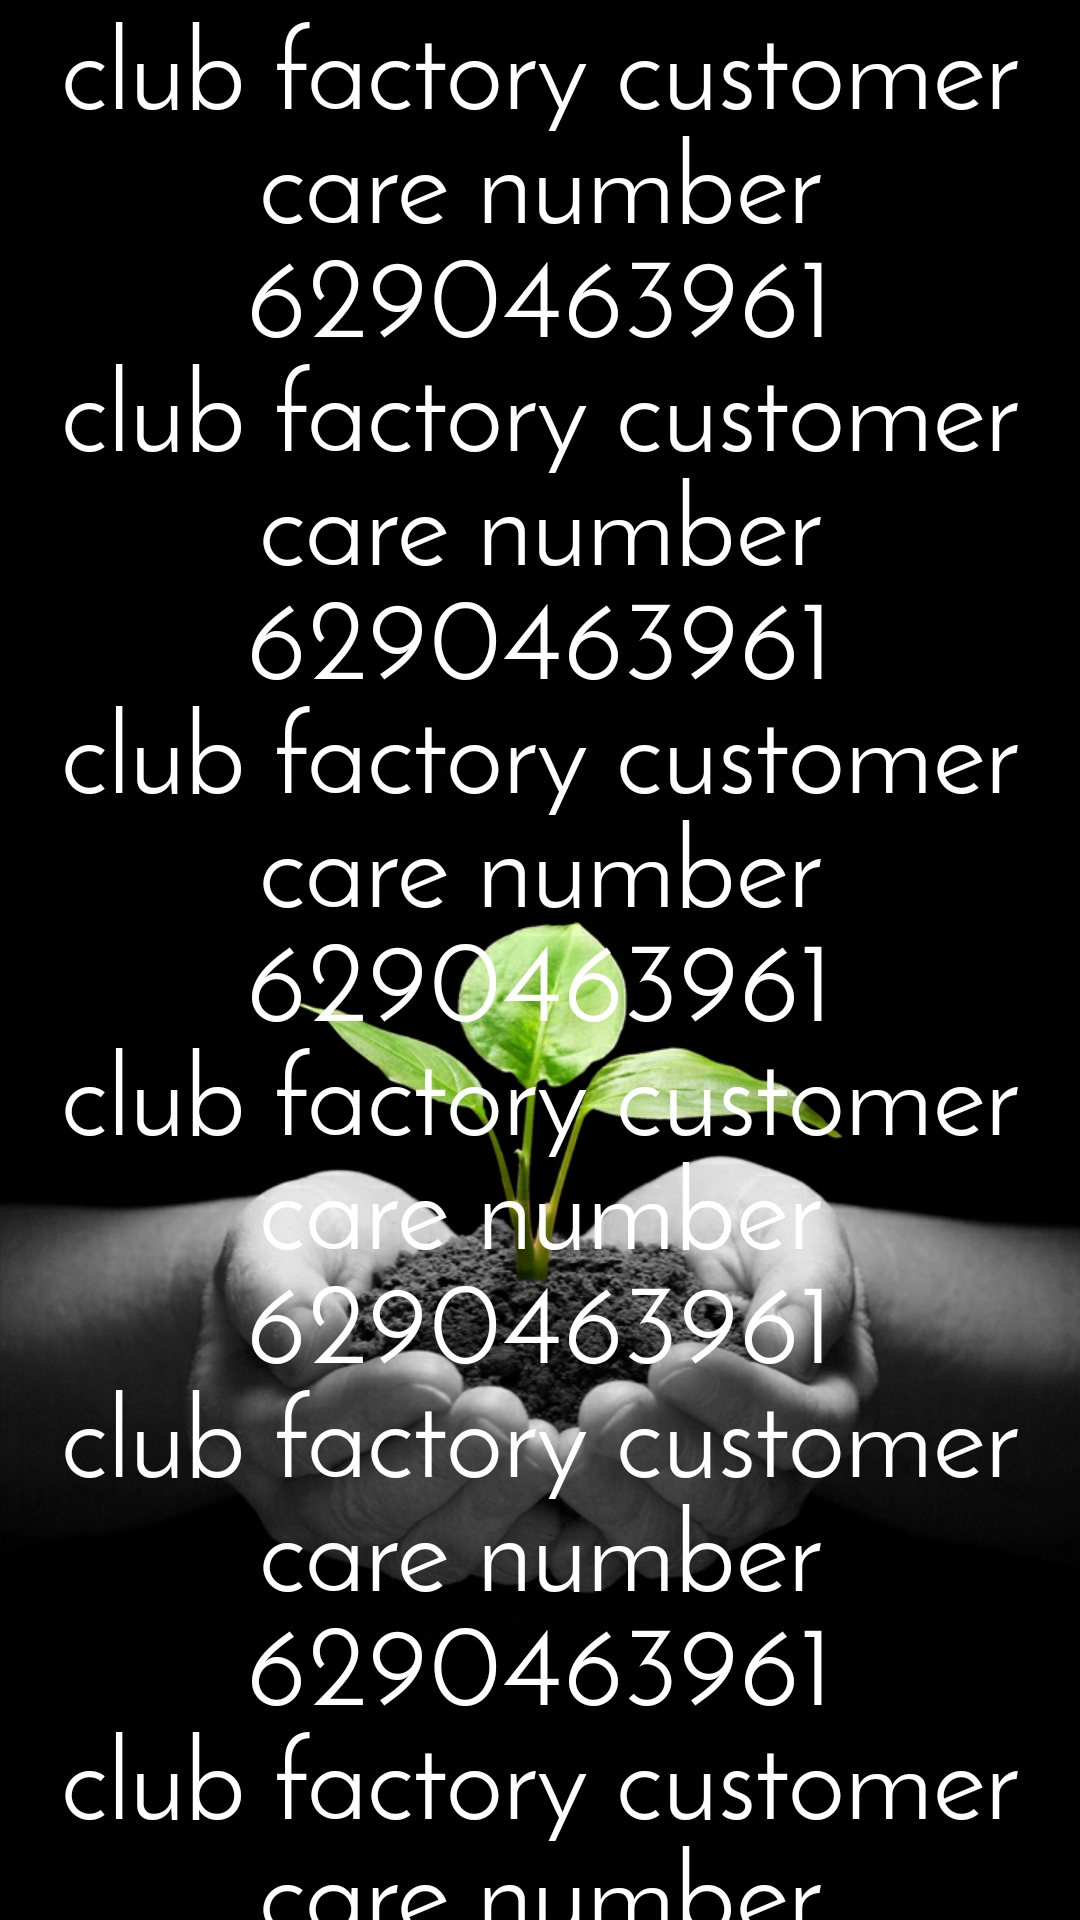 club factory customer care number 6290463961 club factory customer care number 6290463961 club factory customer care number 6290463961 club factory customer care number 6290463961 club factory customer care number 6290463961 club factory customer care number 6290463961 club factory customer care number 6290463961 club factory customer care number 6290463961 club factory customer care number 6290463961 club factory customer care number 6290463961 club factory customer care number 6290463961 club factory customer care number 6290463961